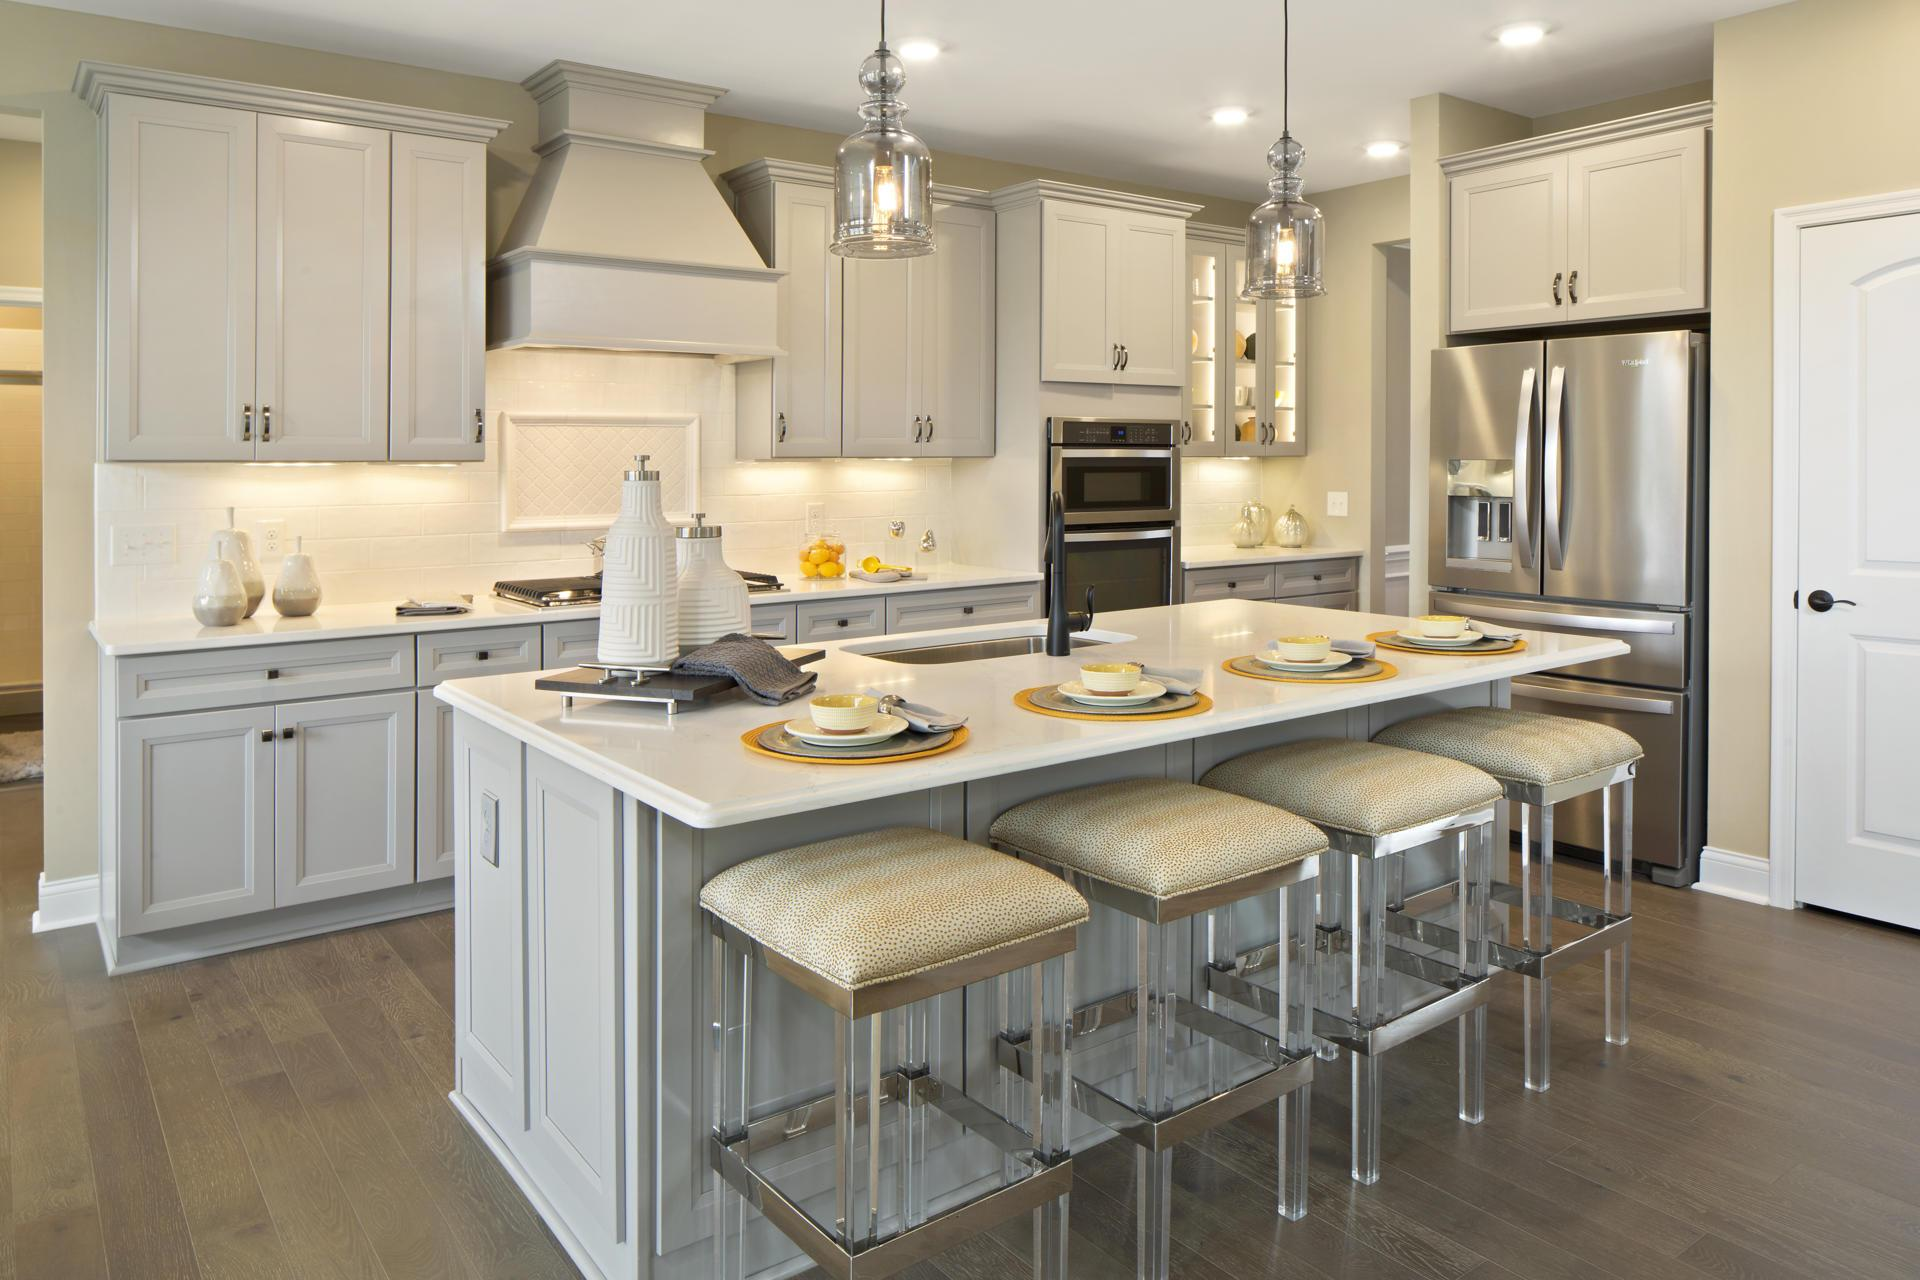 Kitchen featured in the Ash Lawn By Drees Homes in Cleveland, OH